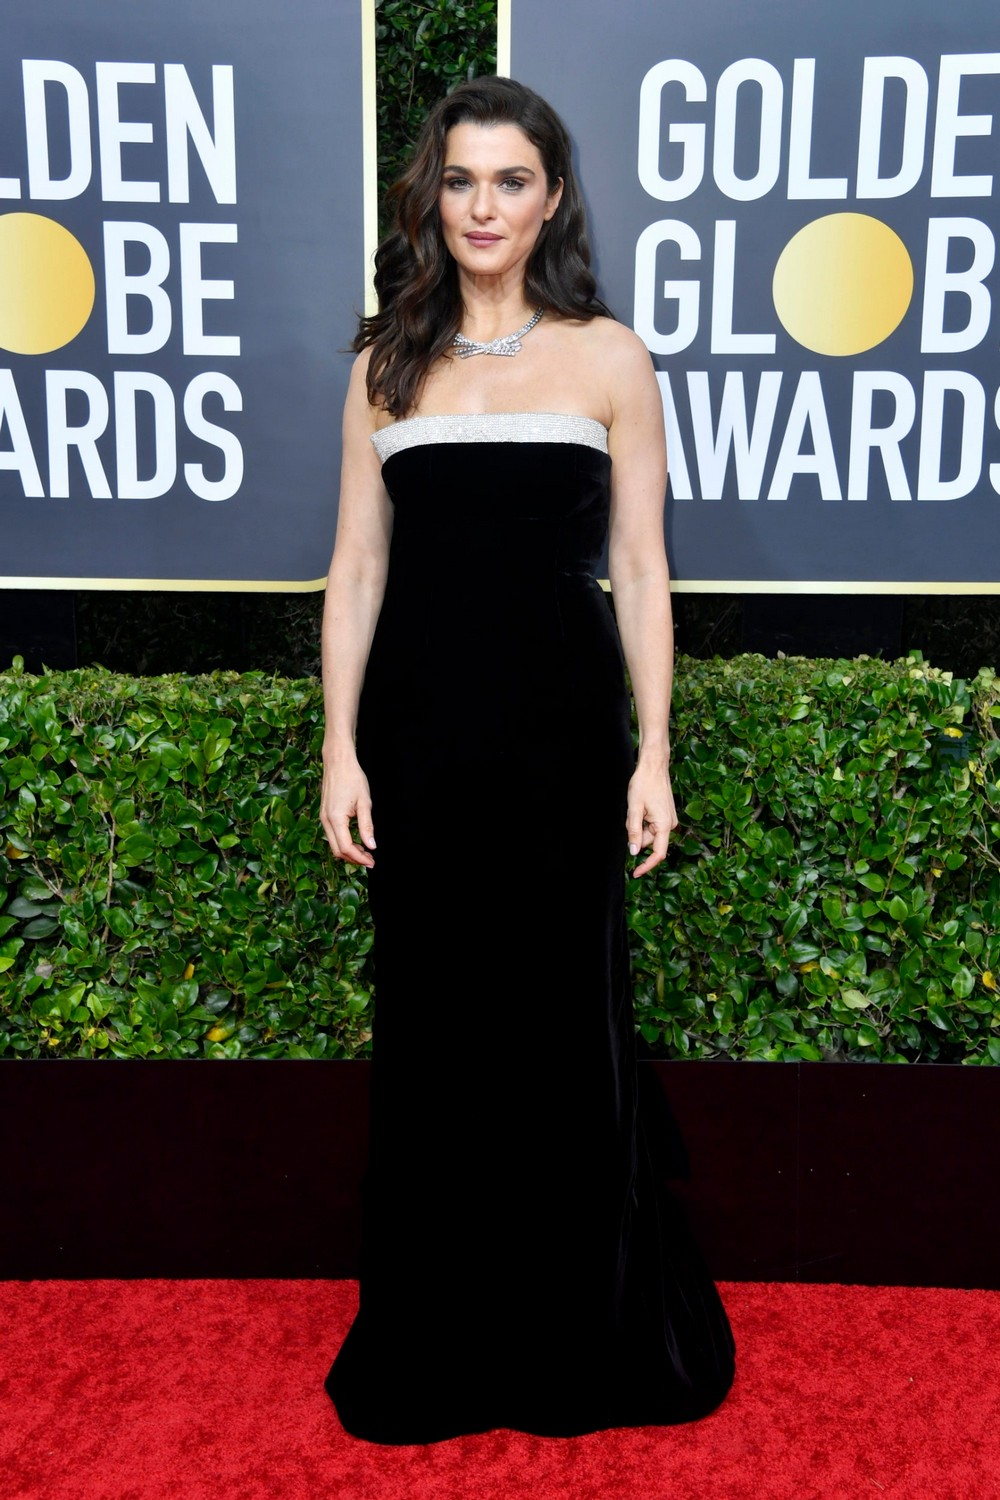 Golden Globes 2020 The Most Exciting Looks Seen on the Red Carpet 3 golden globes 2020 Golden Globes 2020: The Most Exciting Looks Seen on the Red Carpet Golden Globes 2020 The Most Exciting Looks Seen on the Red Carpet 3